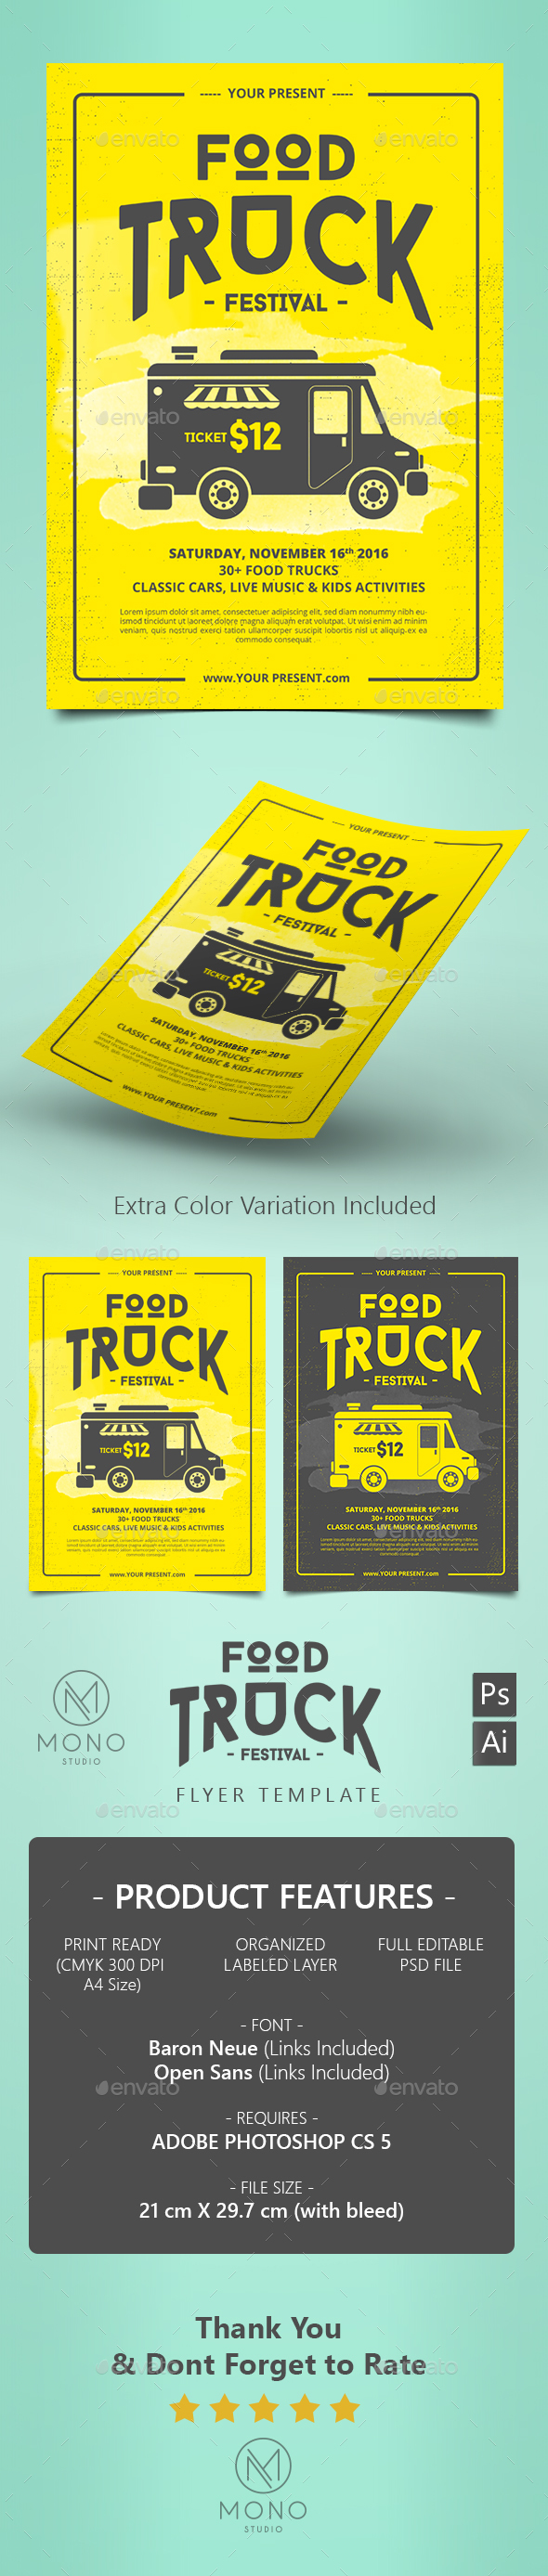 Food Truck Flyer / Poster